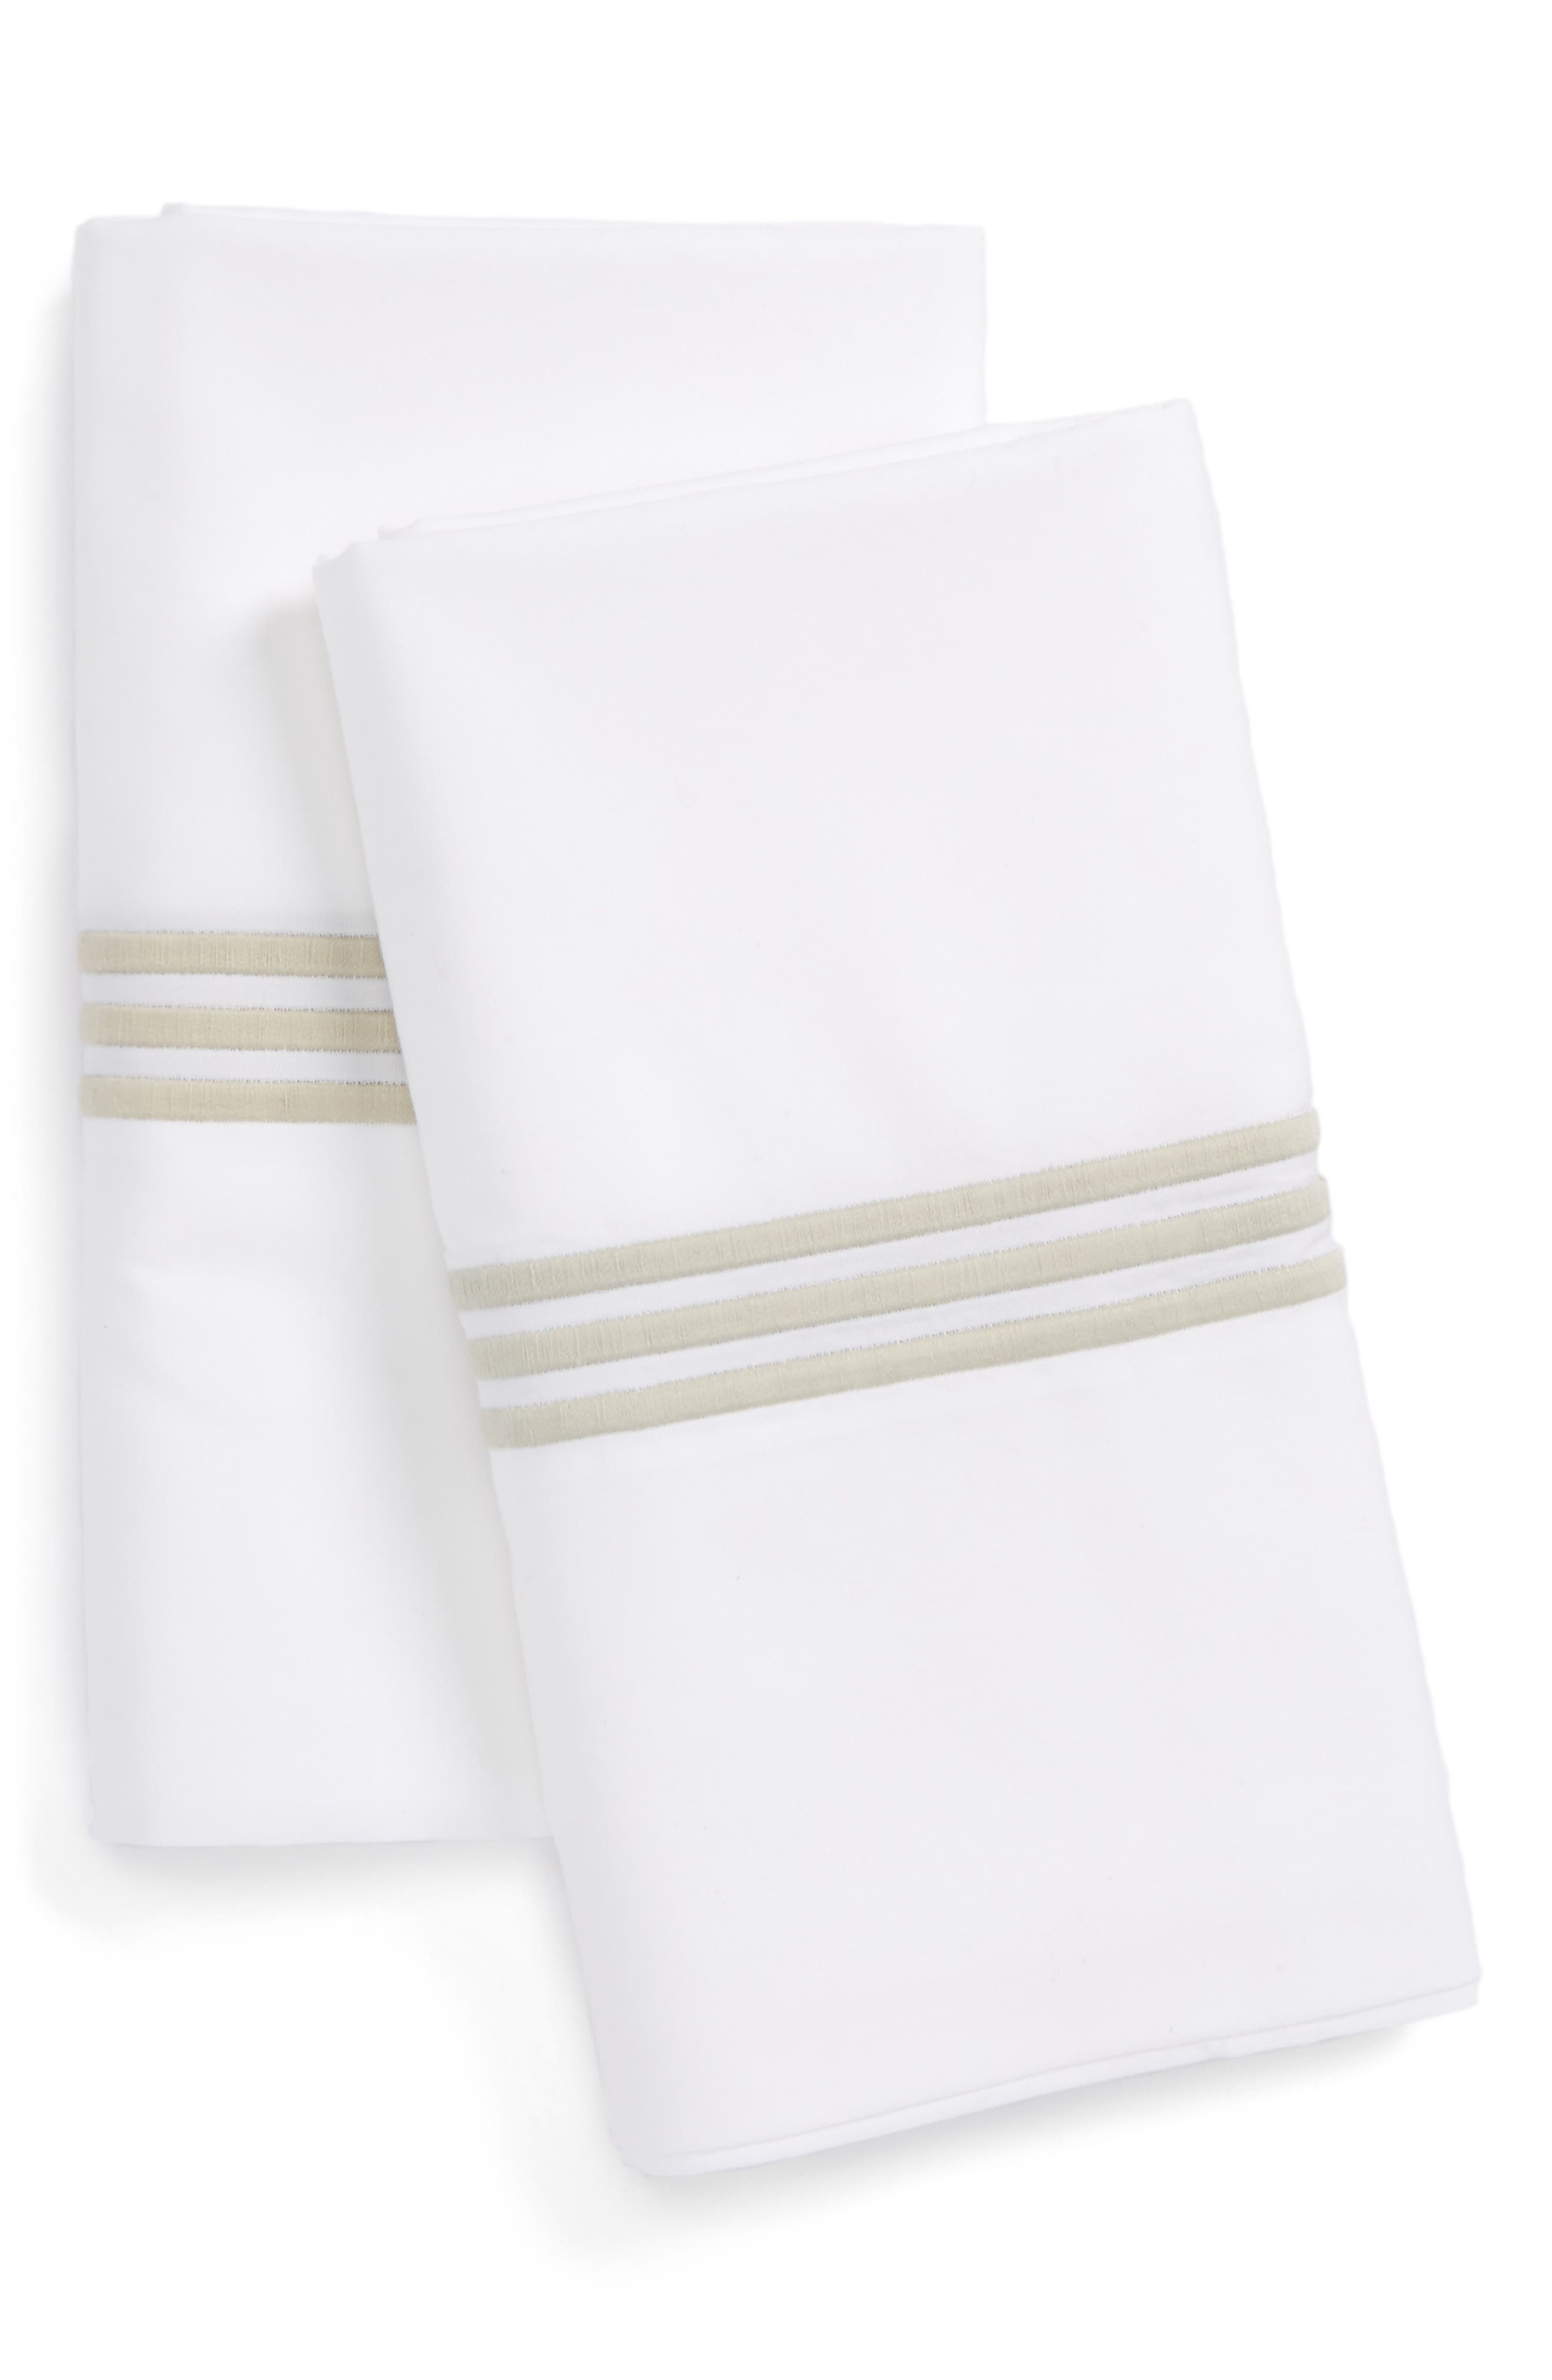 Bel Tempo Pillowcases,                             Main thumbnail 1, color,                             Almond